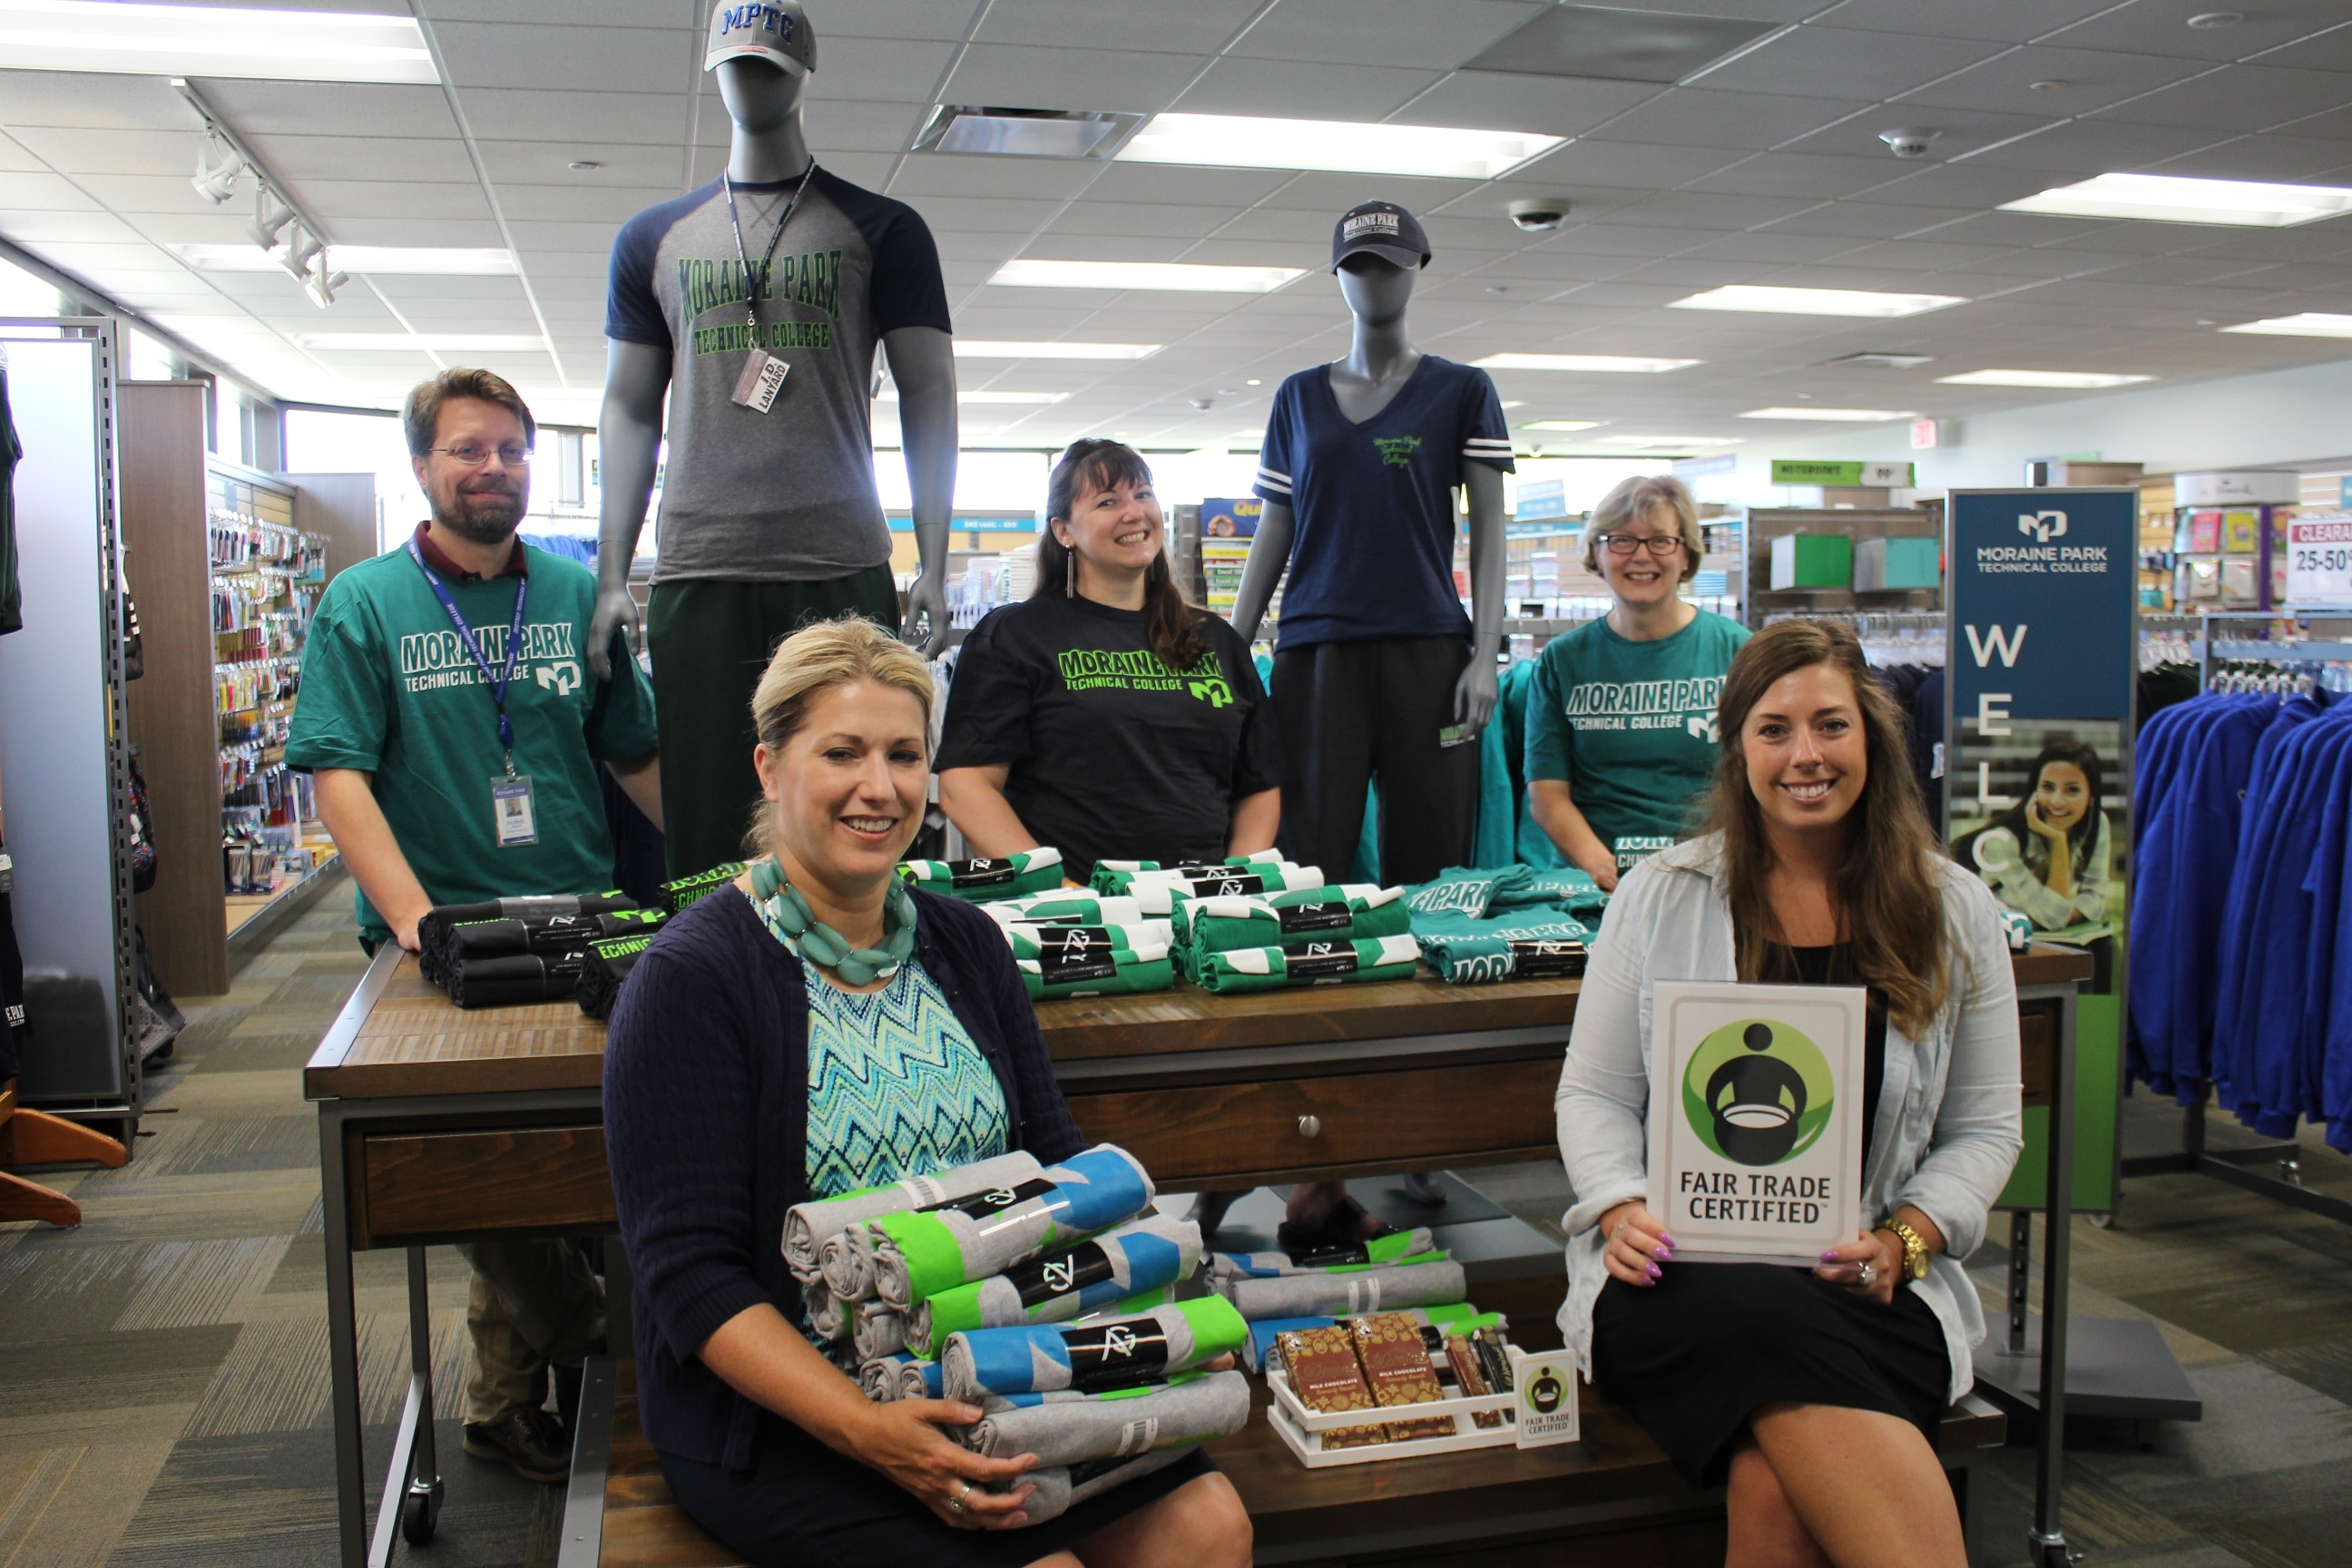 Moraine Park staff wearing logo wear and holding Fair Trade signage in bookstore.